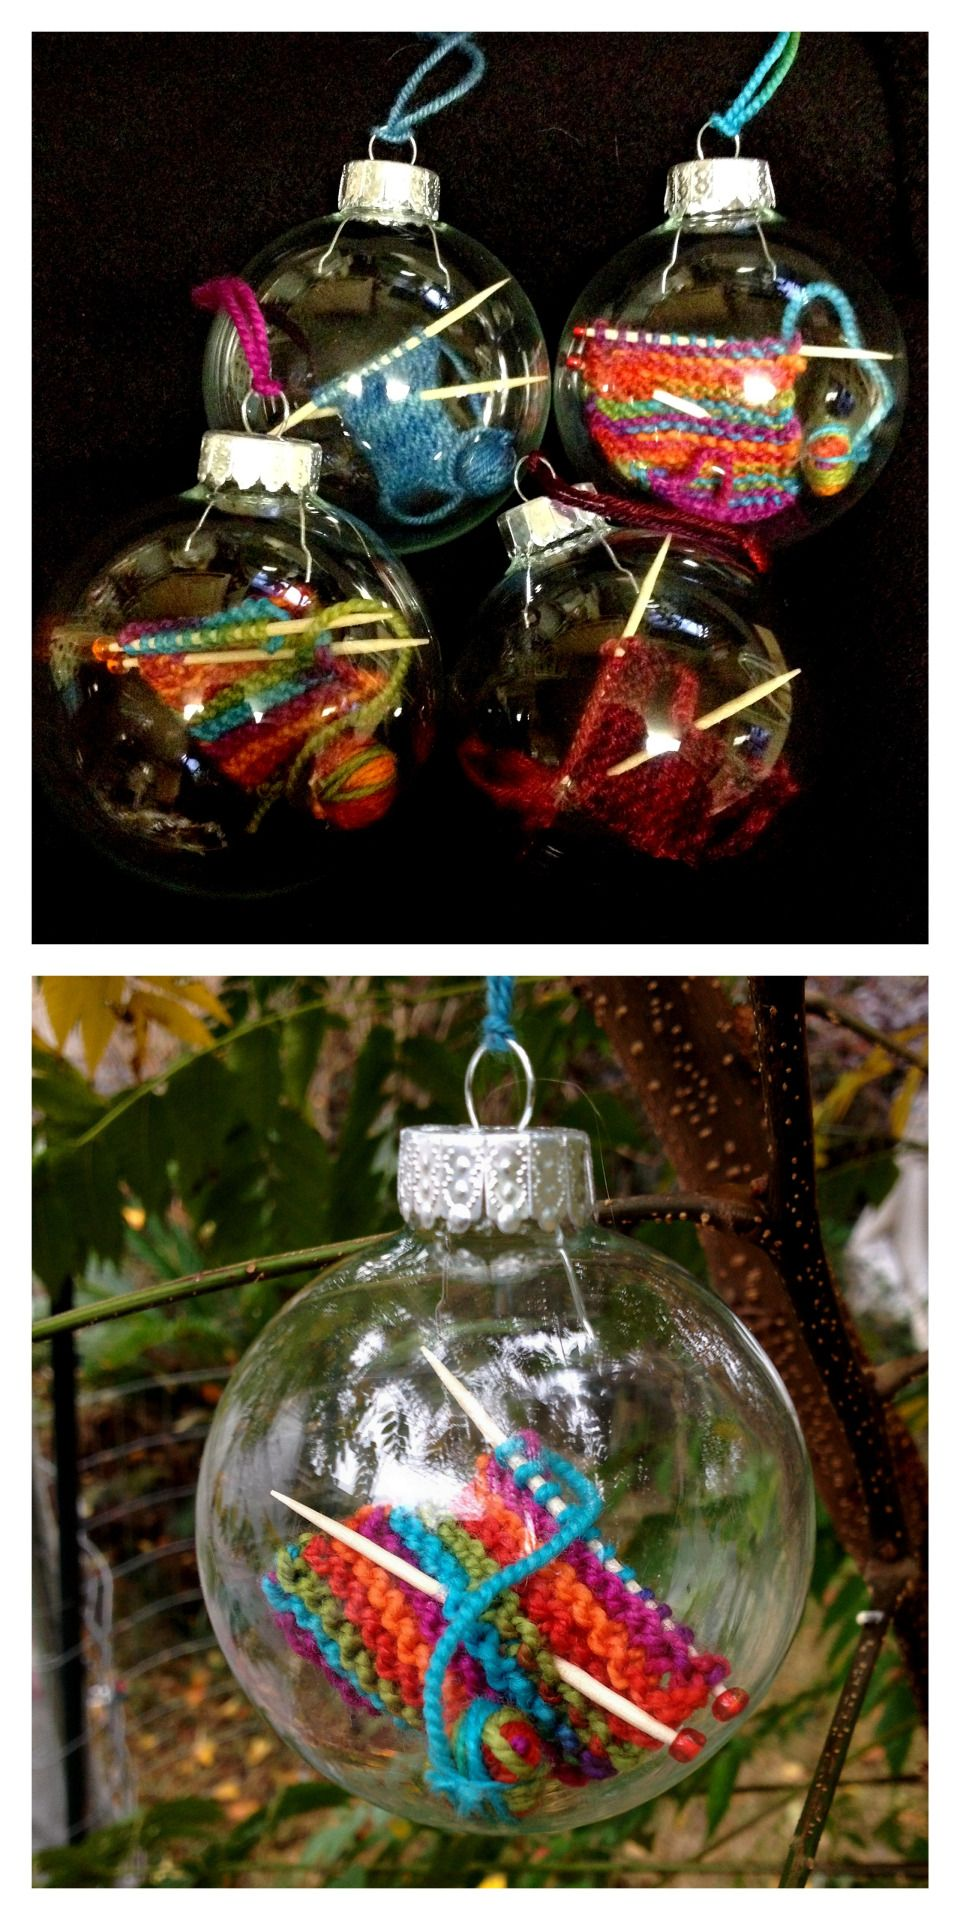 diychristmascrafts: DIY Knitting Ornament Free Pattern from Ravelry ...